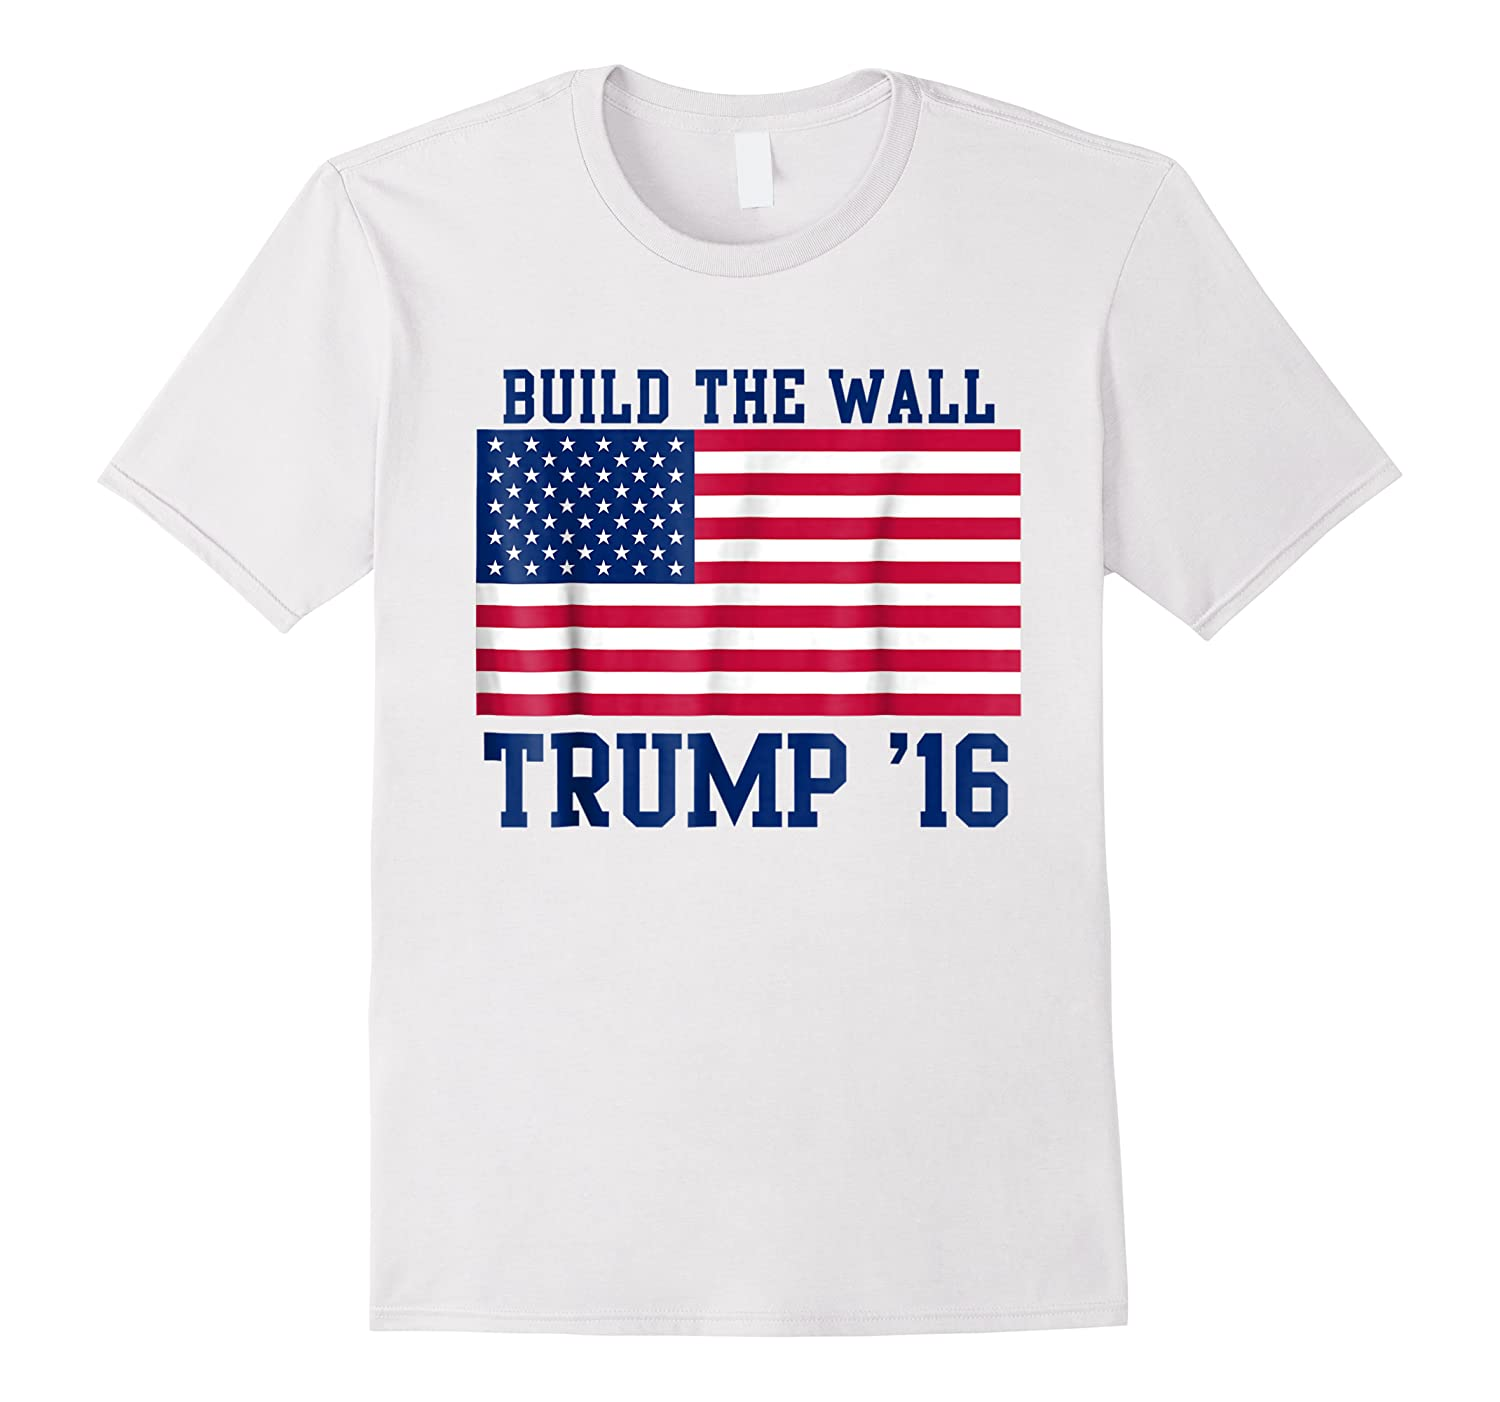 Trump T-shirt 2016 Build The Wall Election